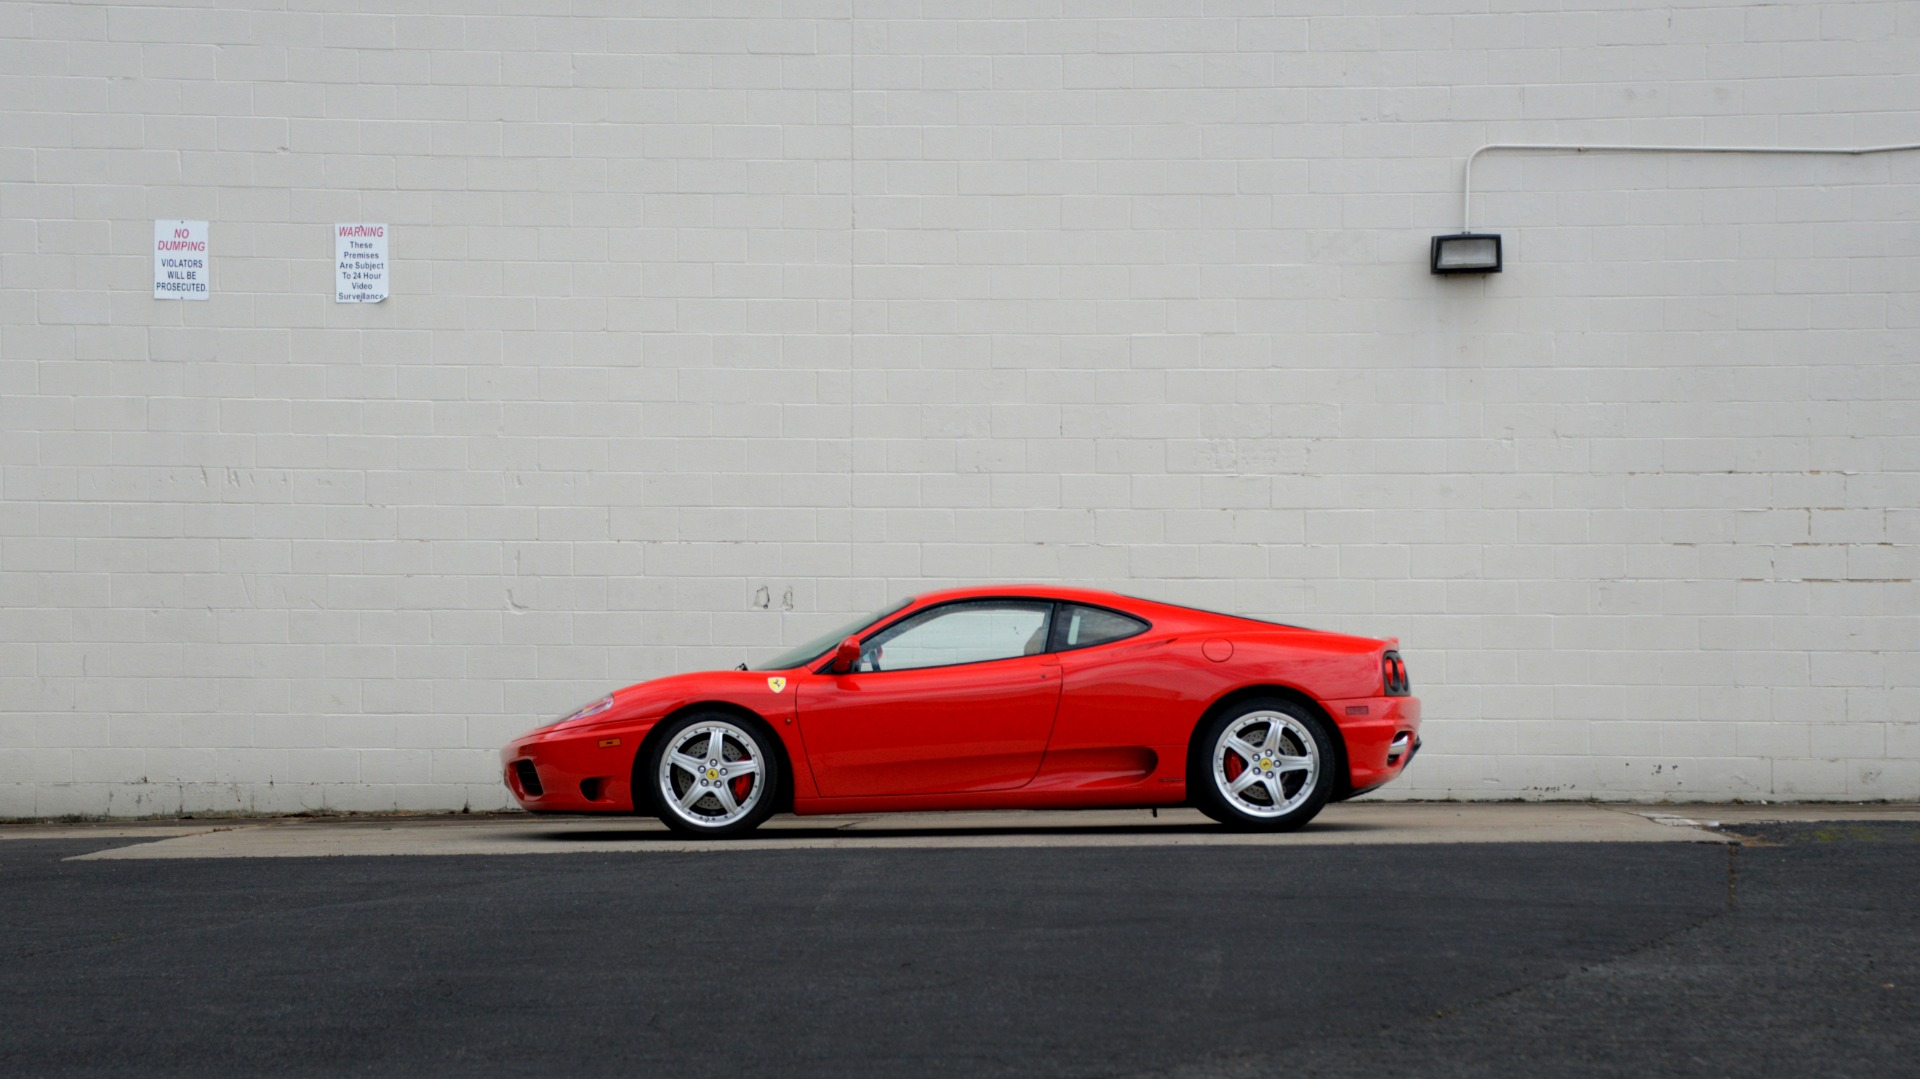 Used 2004 Ferrari 360 MODENA COUPE / GATED 6-SPD MANUAL / SUNROOF / LOW MILES for sale Sold at Formula Imports in Charlotte NC 28227 14